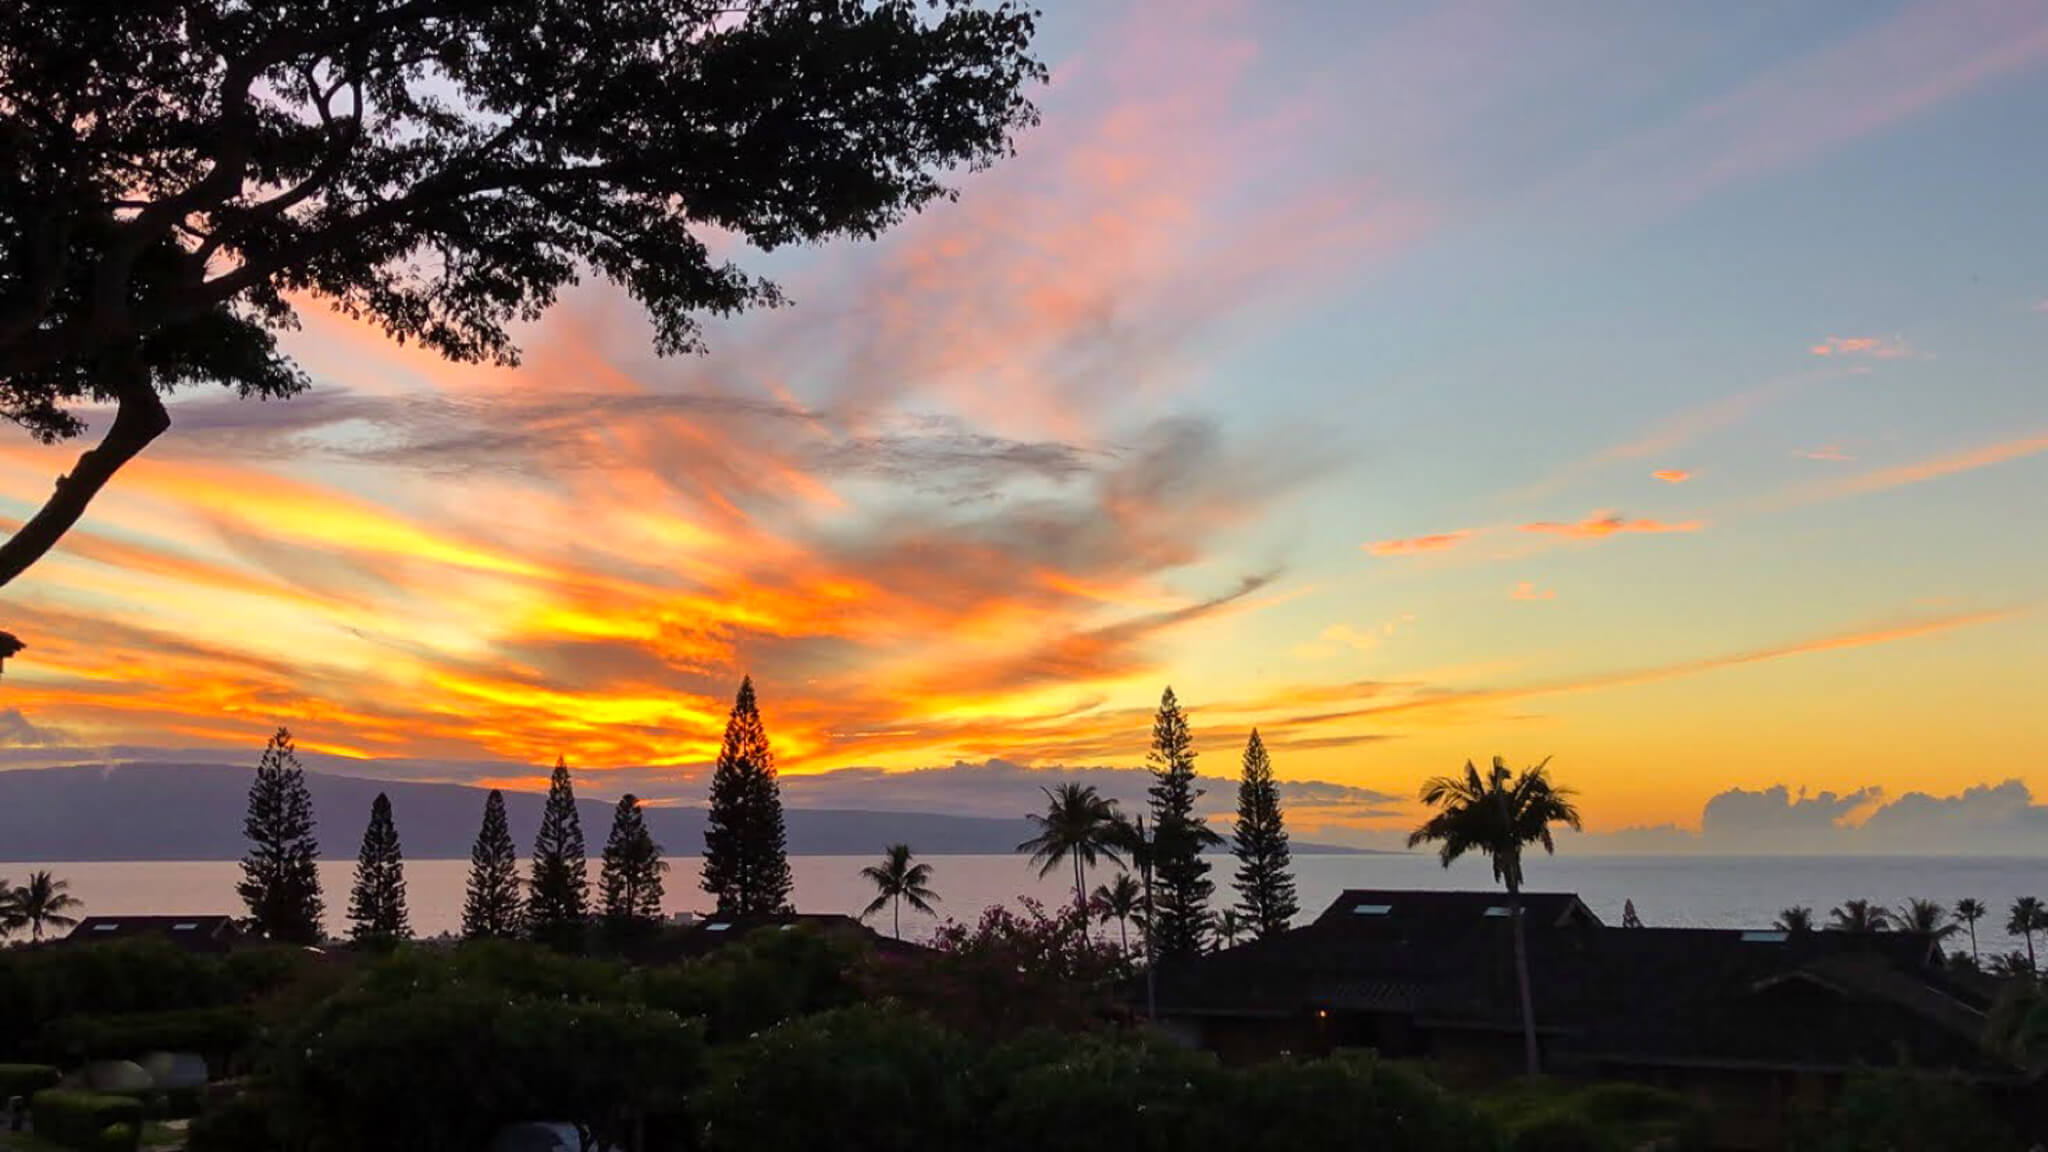 What To Do in Maui: The Ultimate Maui Travel Guide